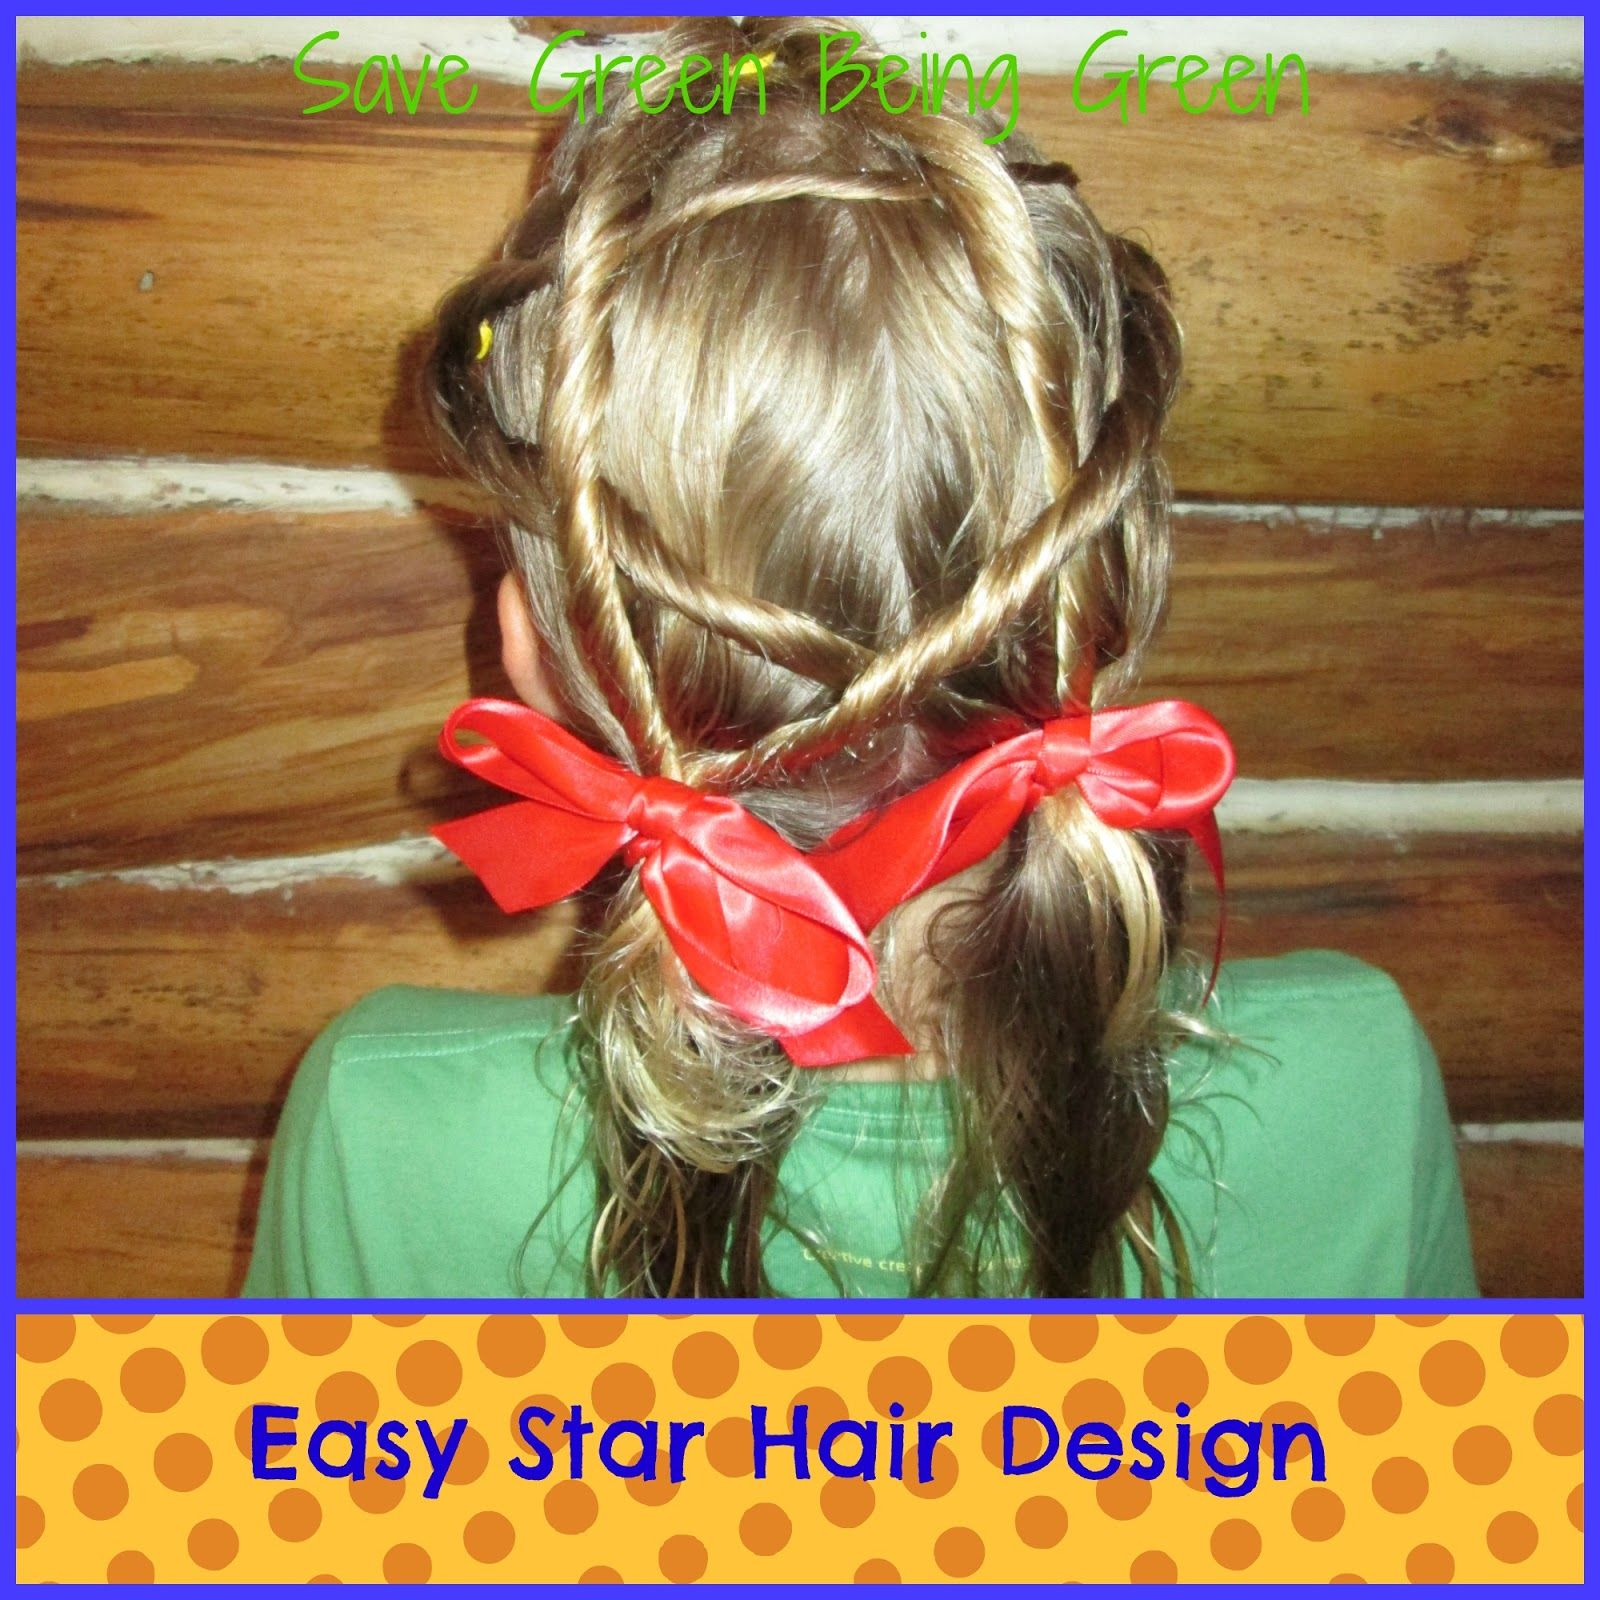 Easy Star Hair Design For Girls Fun Idea For Memorial Day Or July